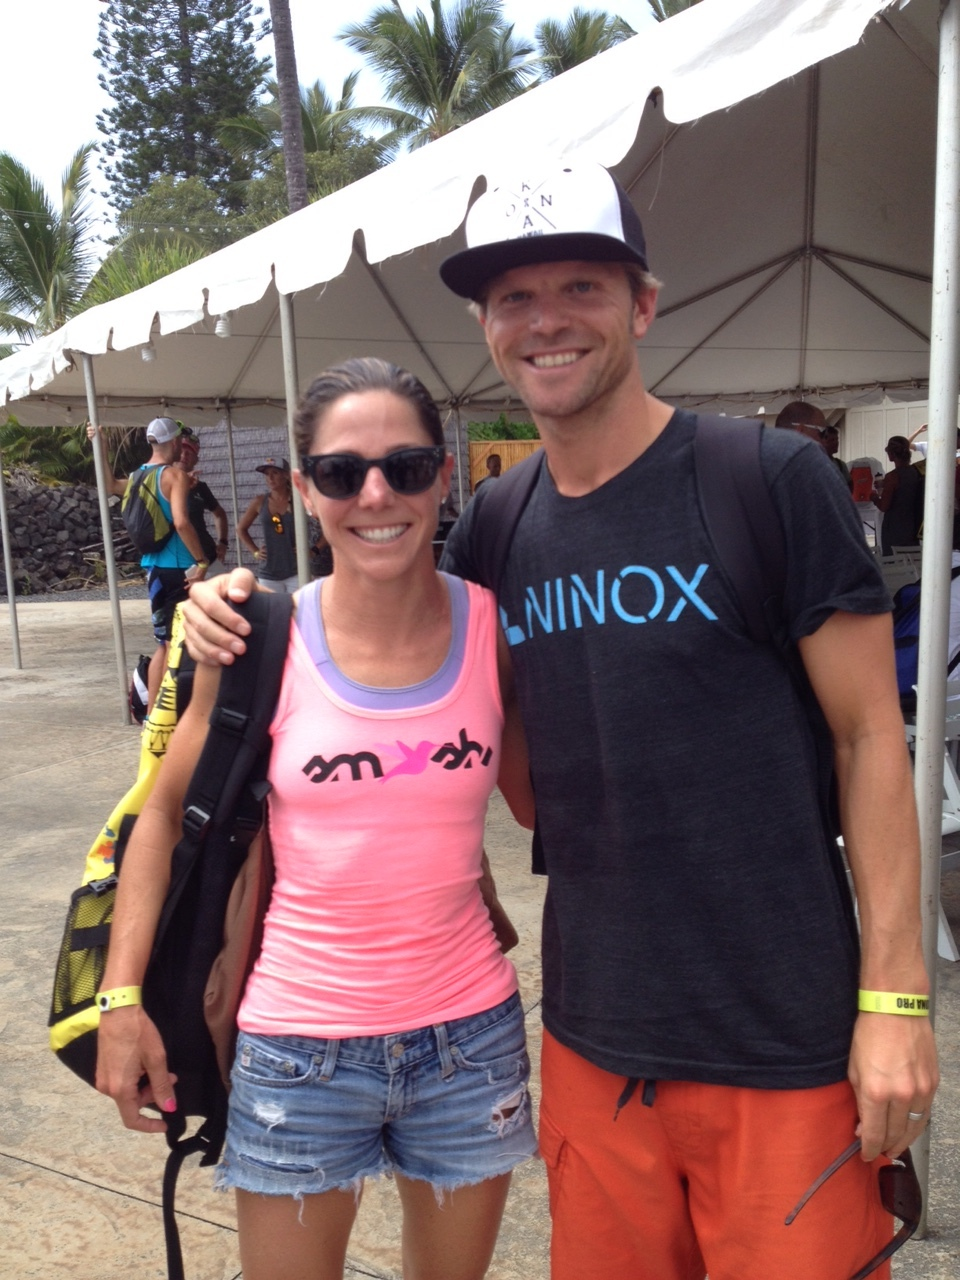 I met Laurel Wassner back in 2011 while training in Tucson with Cliff. This year she and I were the final professionals to qualify for Kona on either side. Photo was snapped after the pro meeting on Thursday.